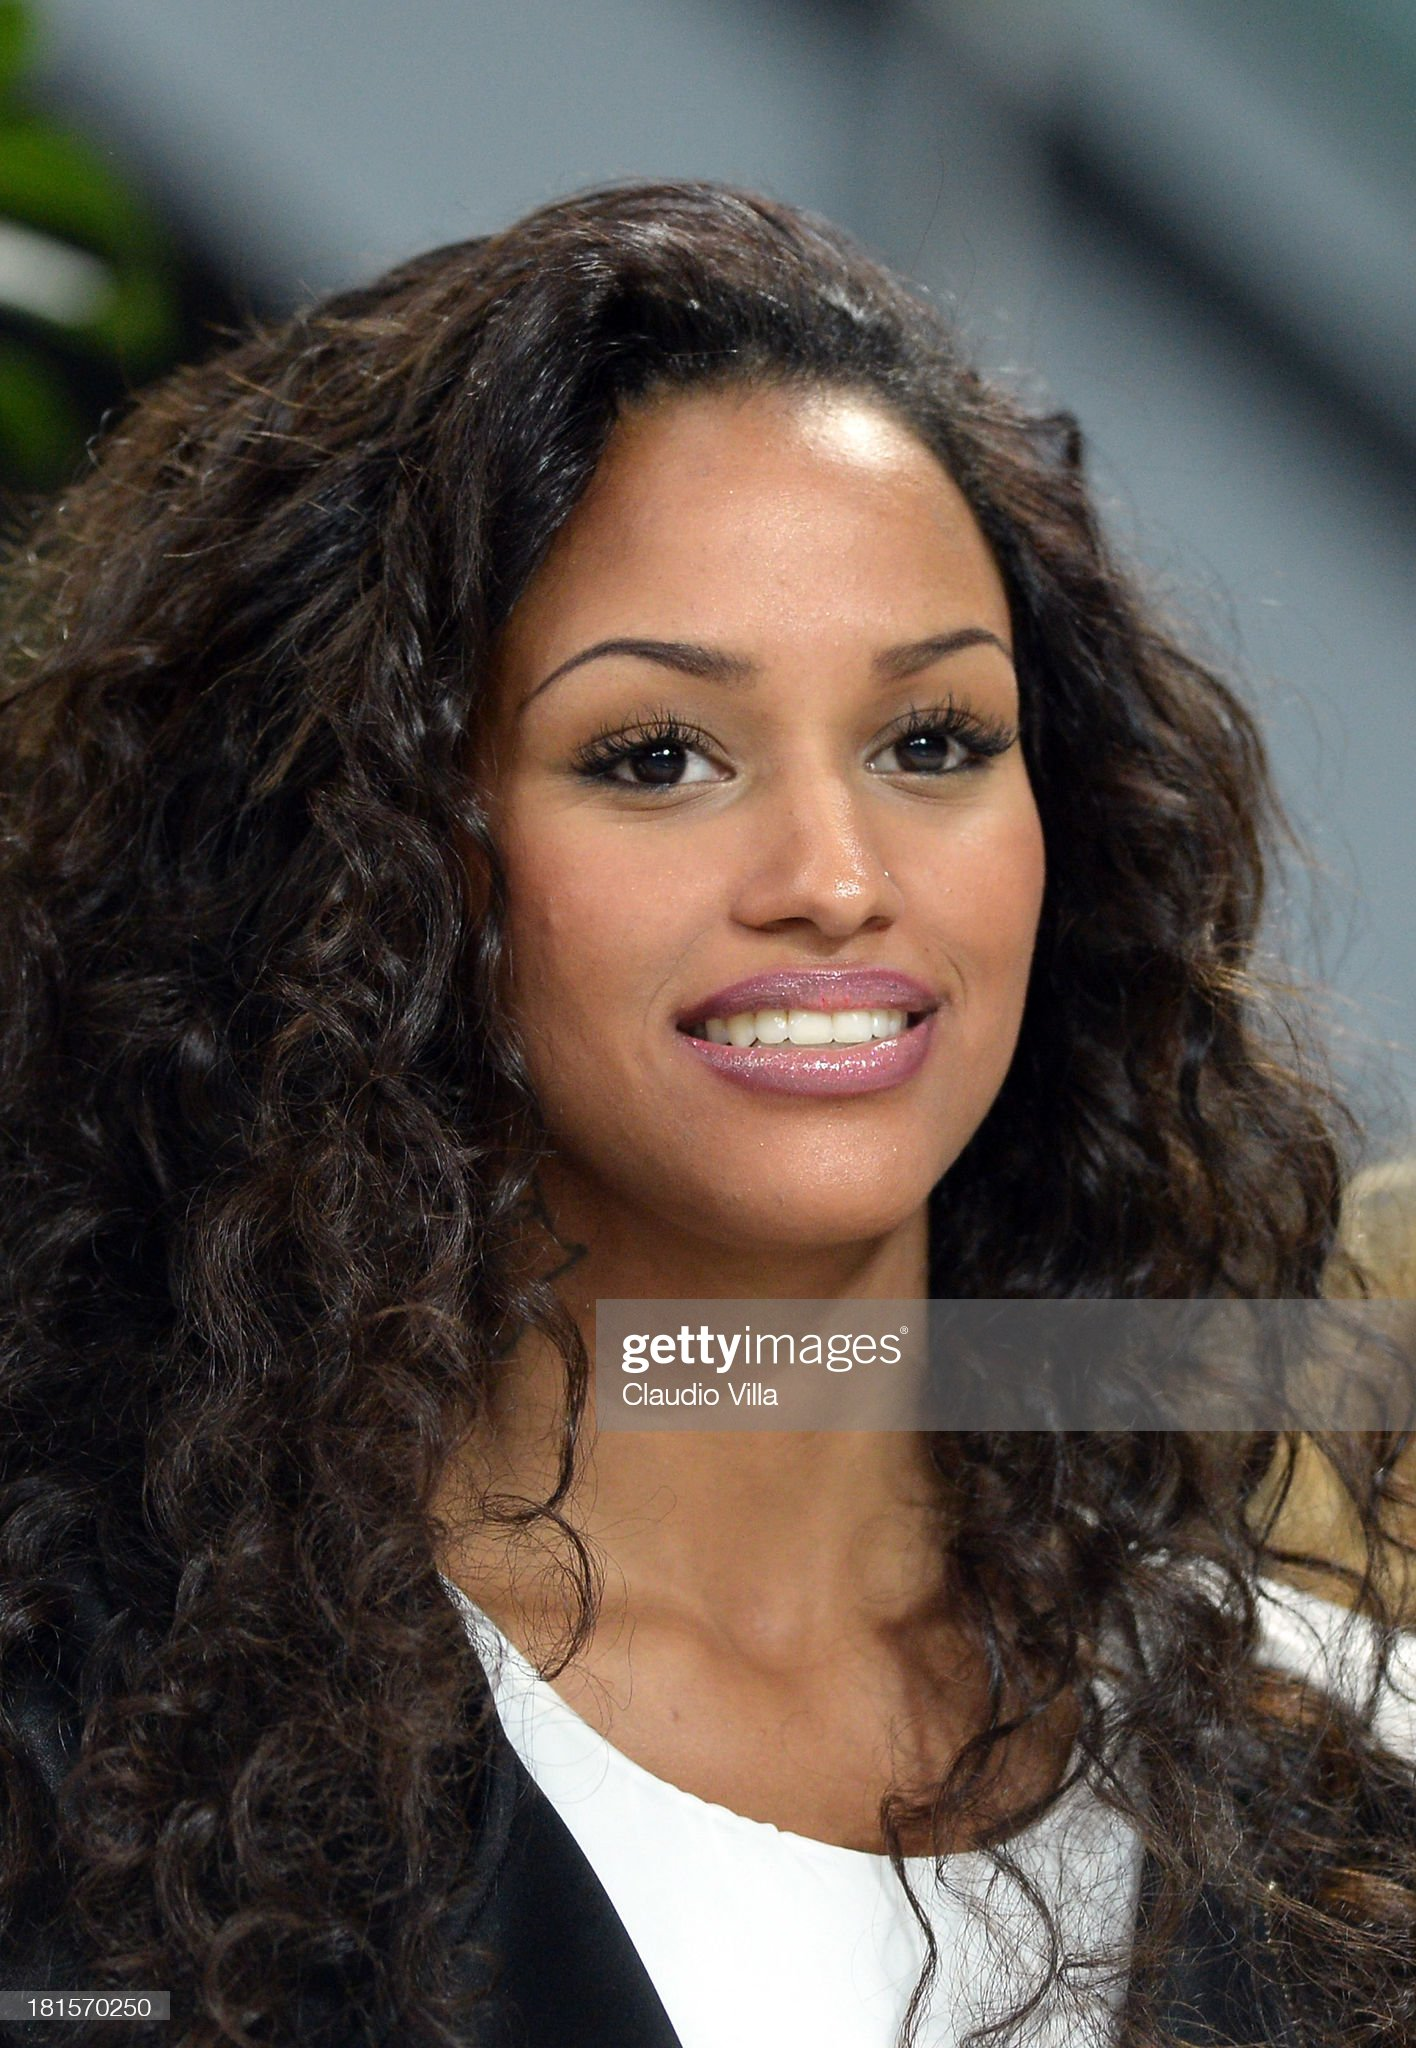 ¿Cuánto mide Fanny Neguesha? - Real height Fanny-neguesha-attends-the-serie-a-match-between-ac-milan-and-ssc-at-picture-id181570250?s=2048x2048